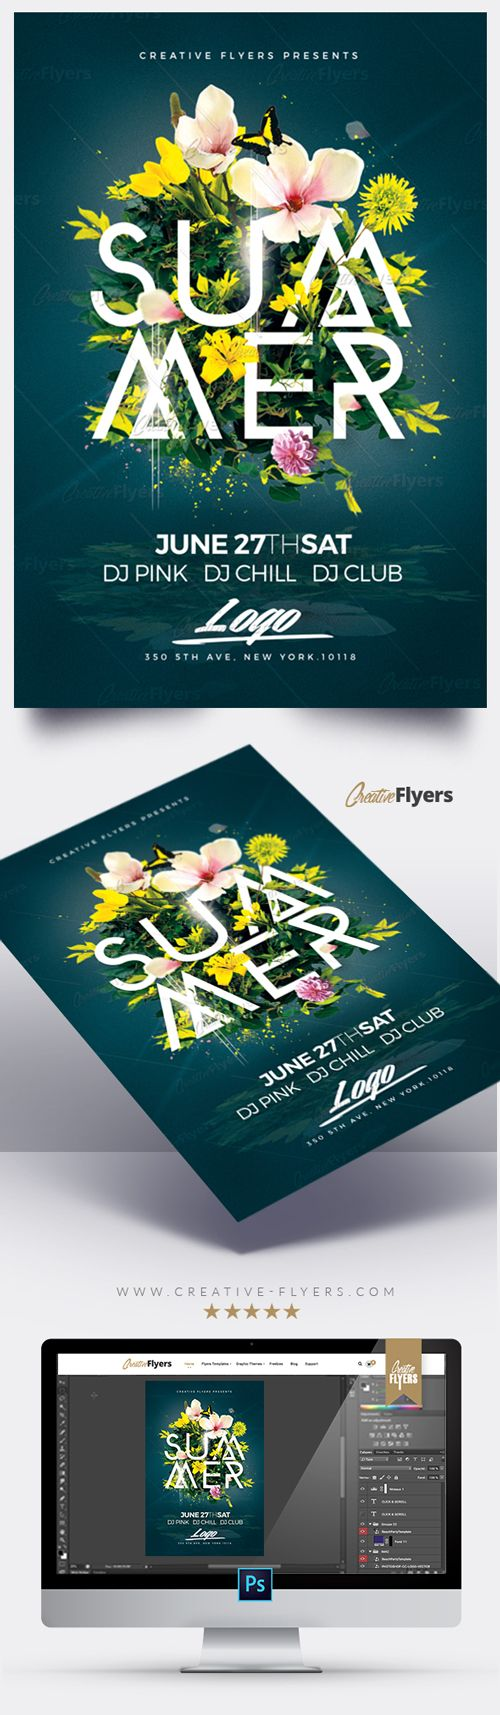 Creative Summer Flyer Templates is a premium Photoshop PSD flyer / poster template designed by Creative Flyers perfect to promote your Summer Party ! #summer #flyers #templates #floral #creativeflyers